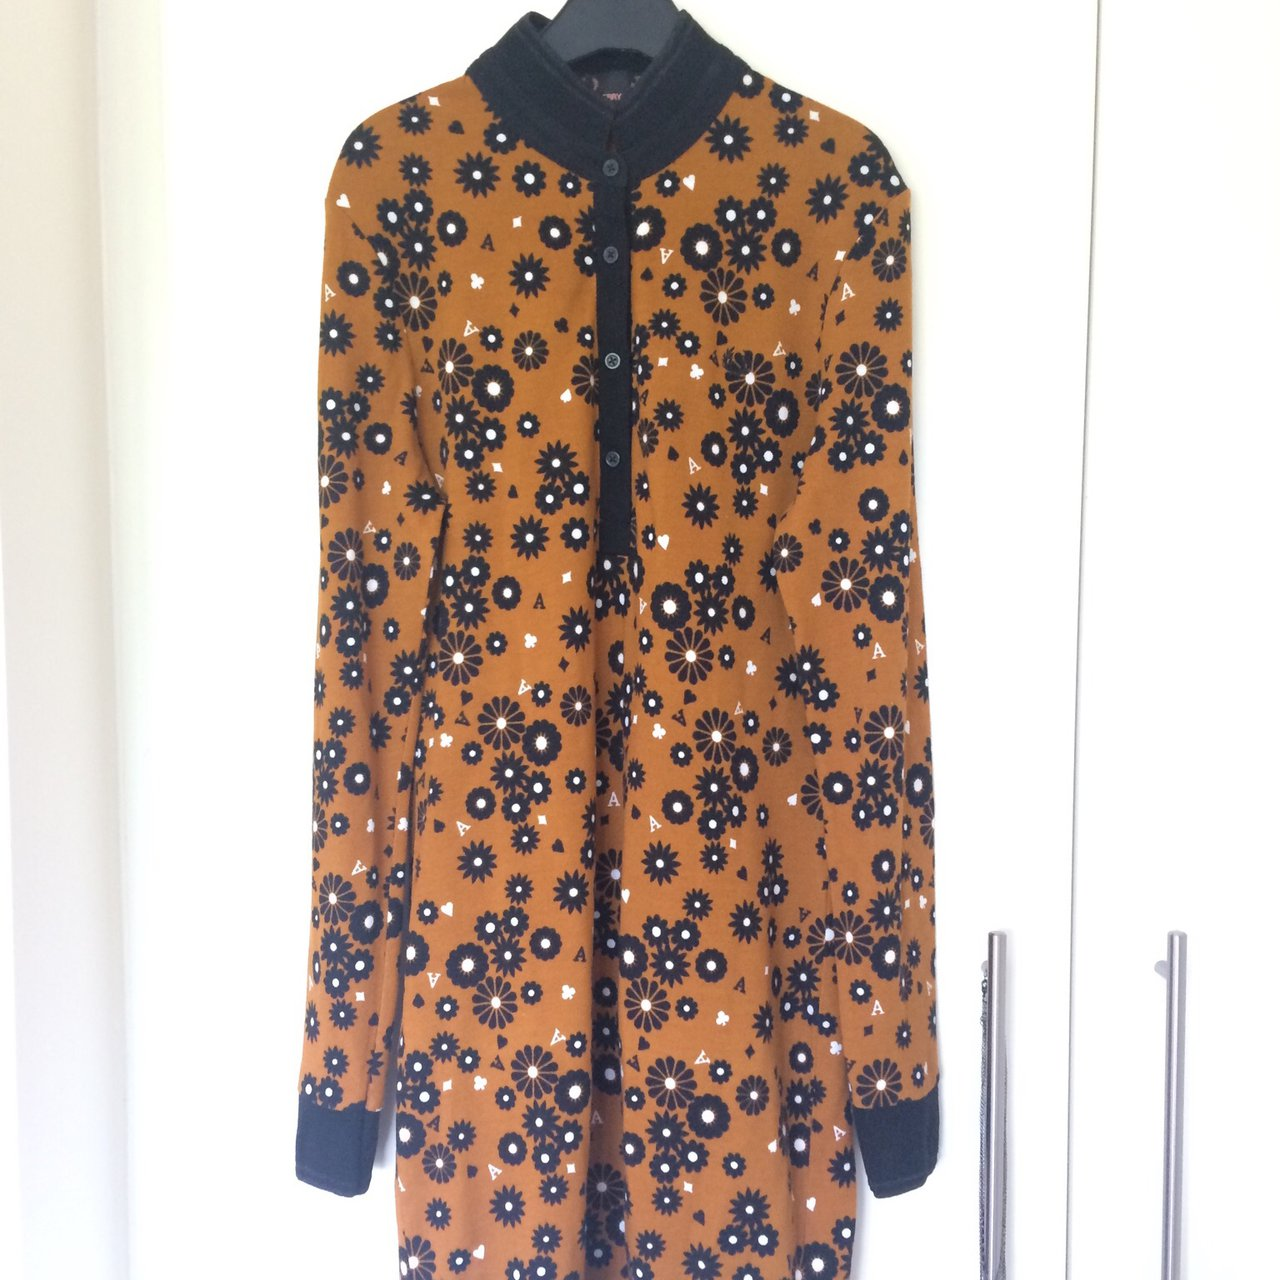 0f8a04342 Authentic Fred Perry x Amy Winehouse Daisy Print Ginger and - Depop